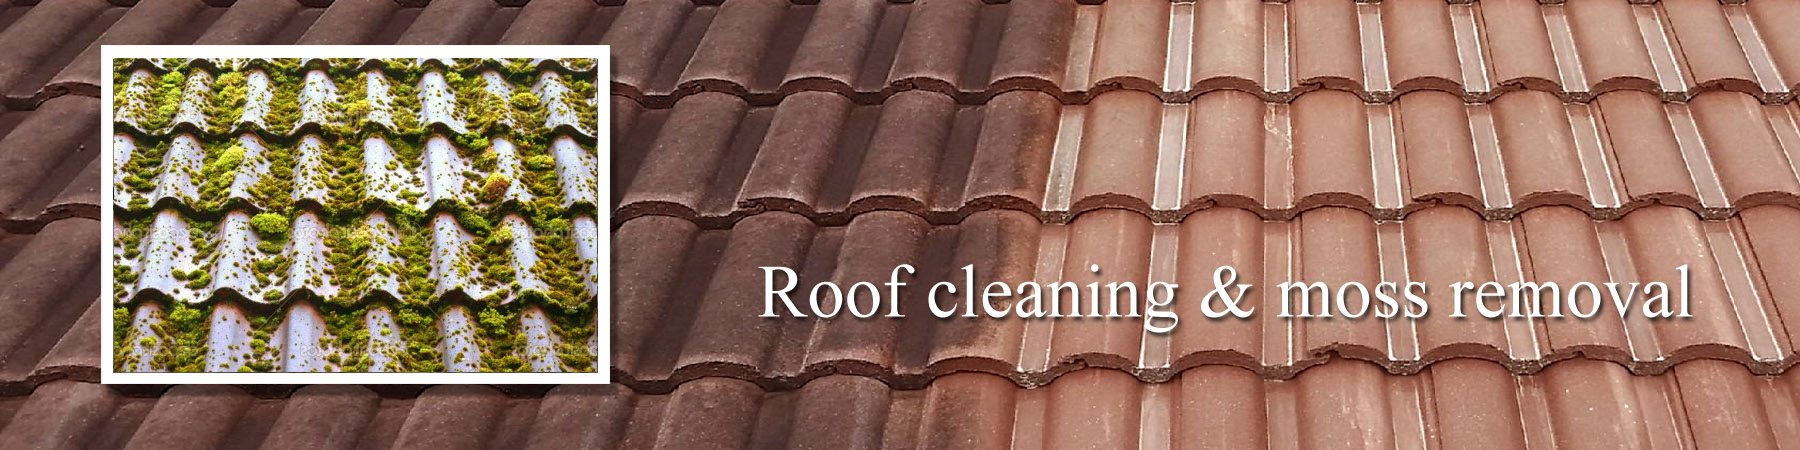 Roof cleaning London Colney J R Cleaning